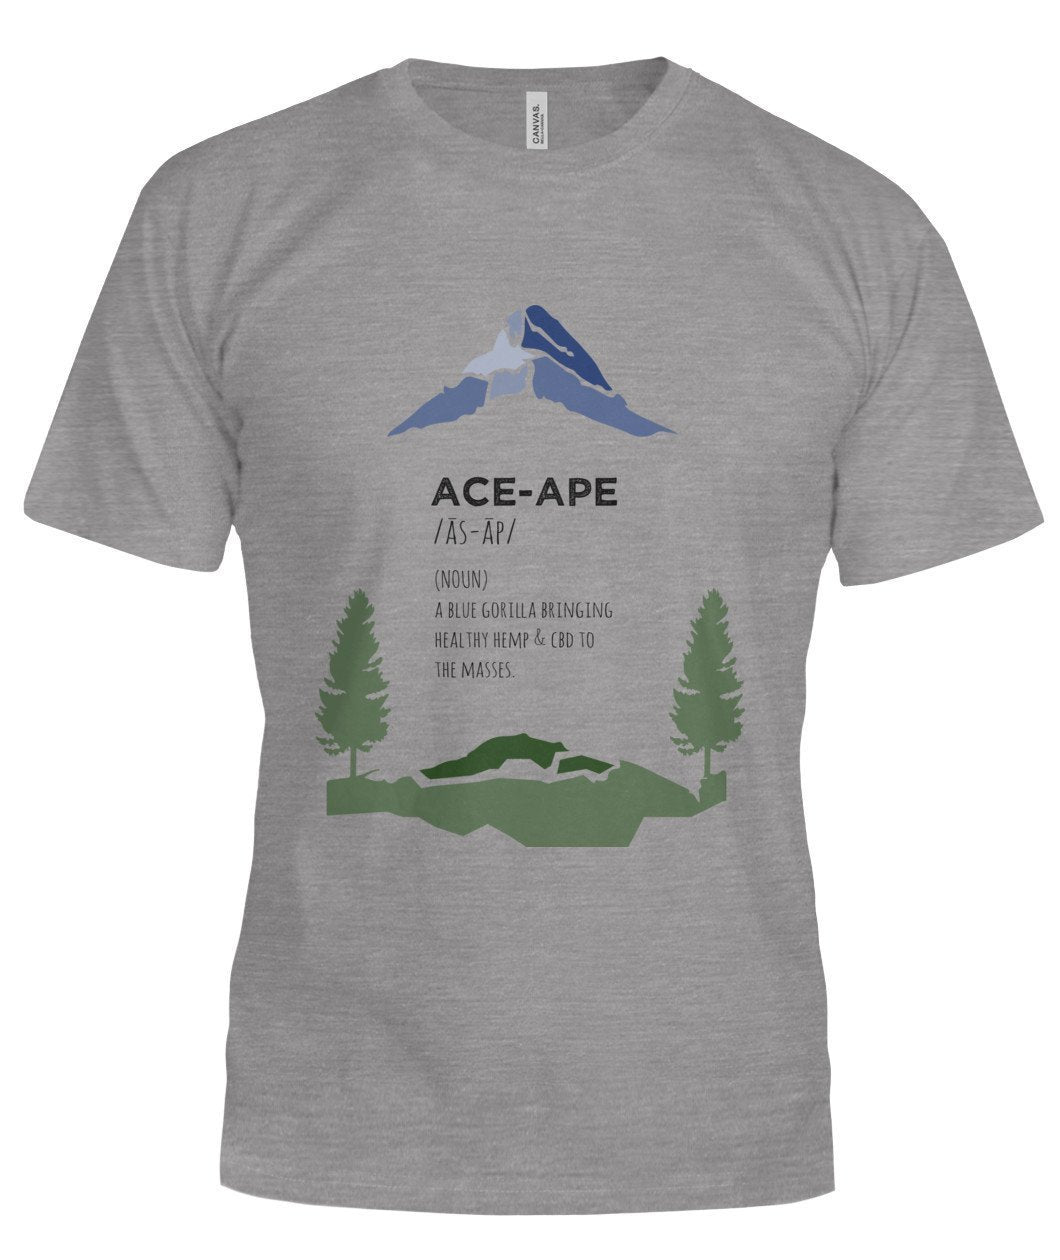 "Short Sleeves Deep Heather / S Define ""AceApe"" Unisex Tee (Semi-Fit) AceApe CBD Dispensary"